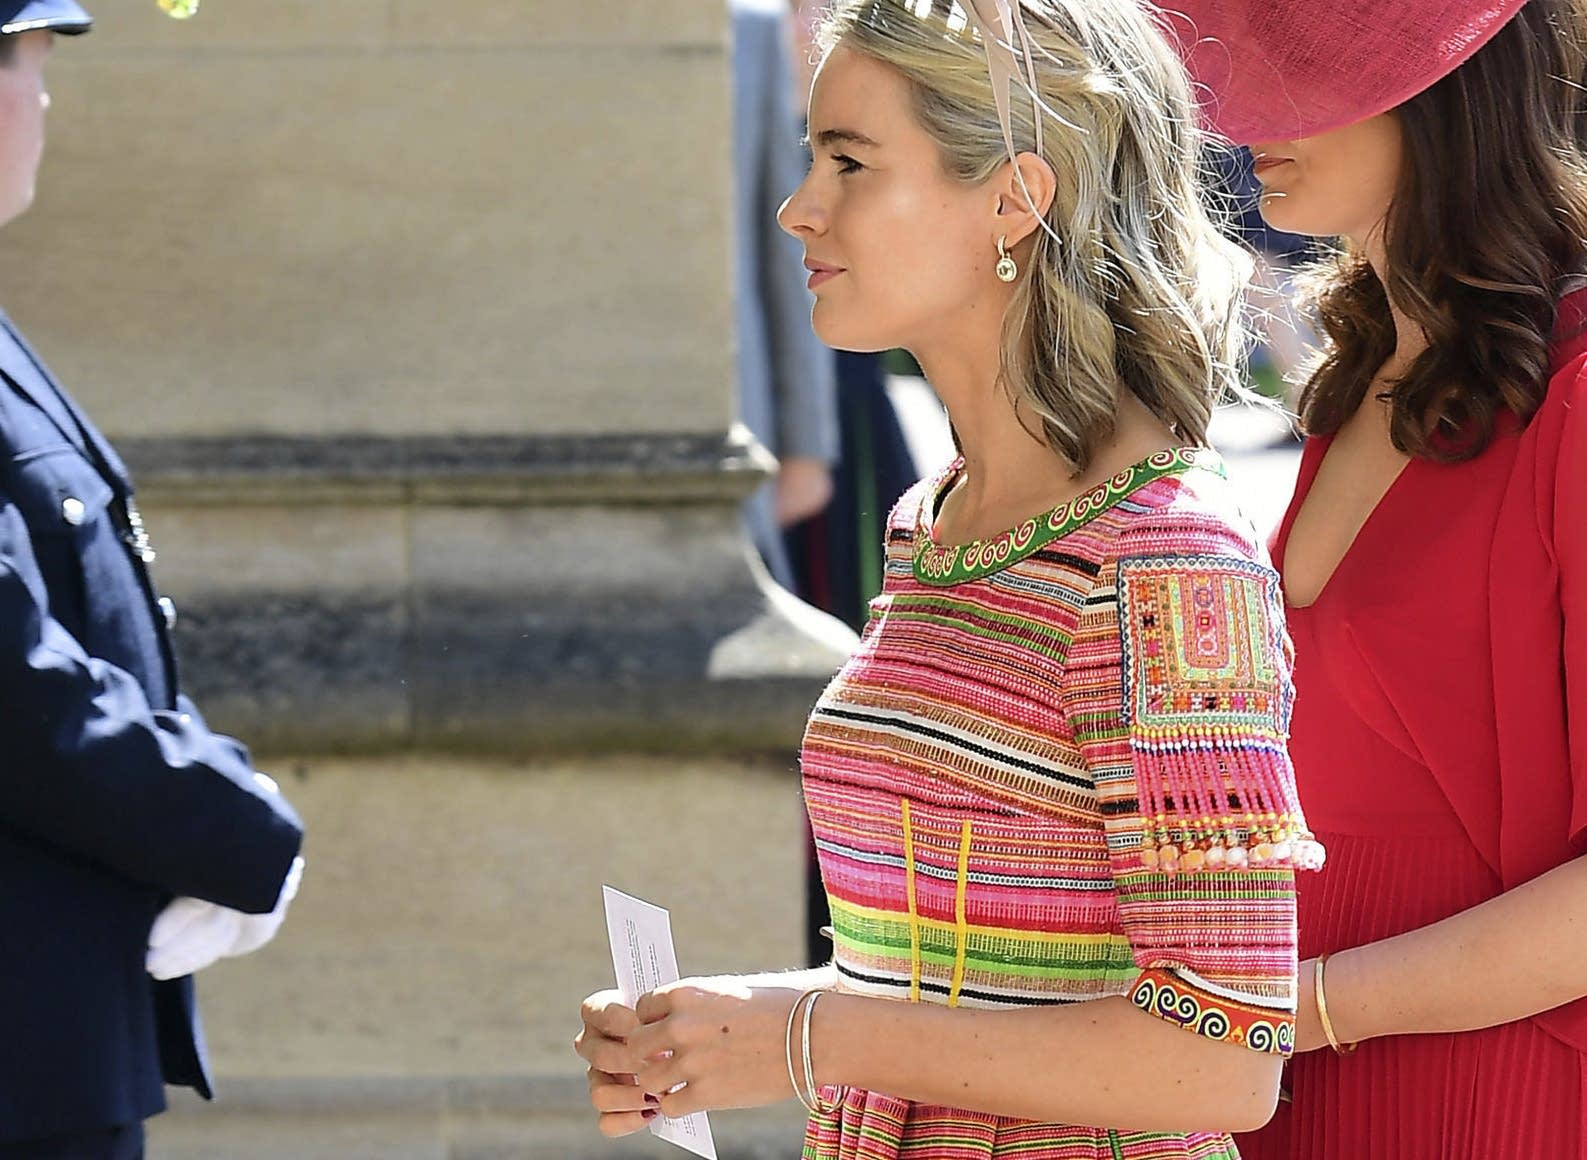 Cressida Bonas wears a dress with Hmong designs to the royal wedding.